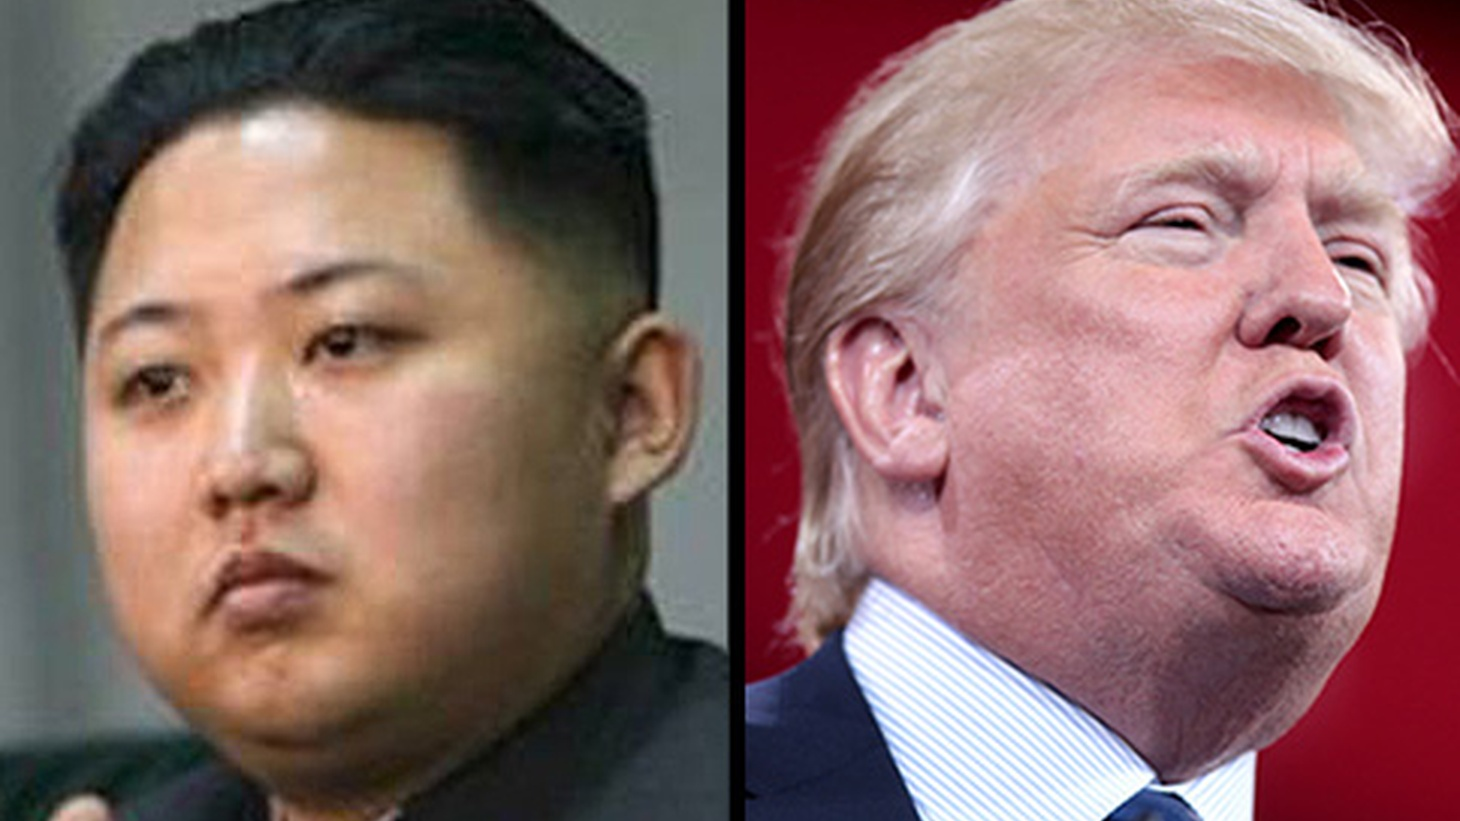 """Kim Jung Un has backed away from his plan to target missiles near Guam. Is that the result of President Trump's tough talk? Former Defense Chief Leon Panetta says, """"It's not time to declare victory, yet."""" We talk with him and others."""